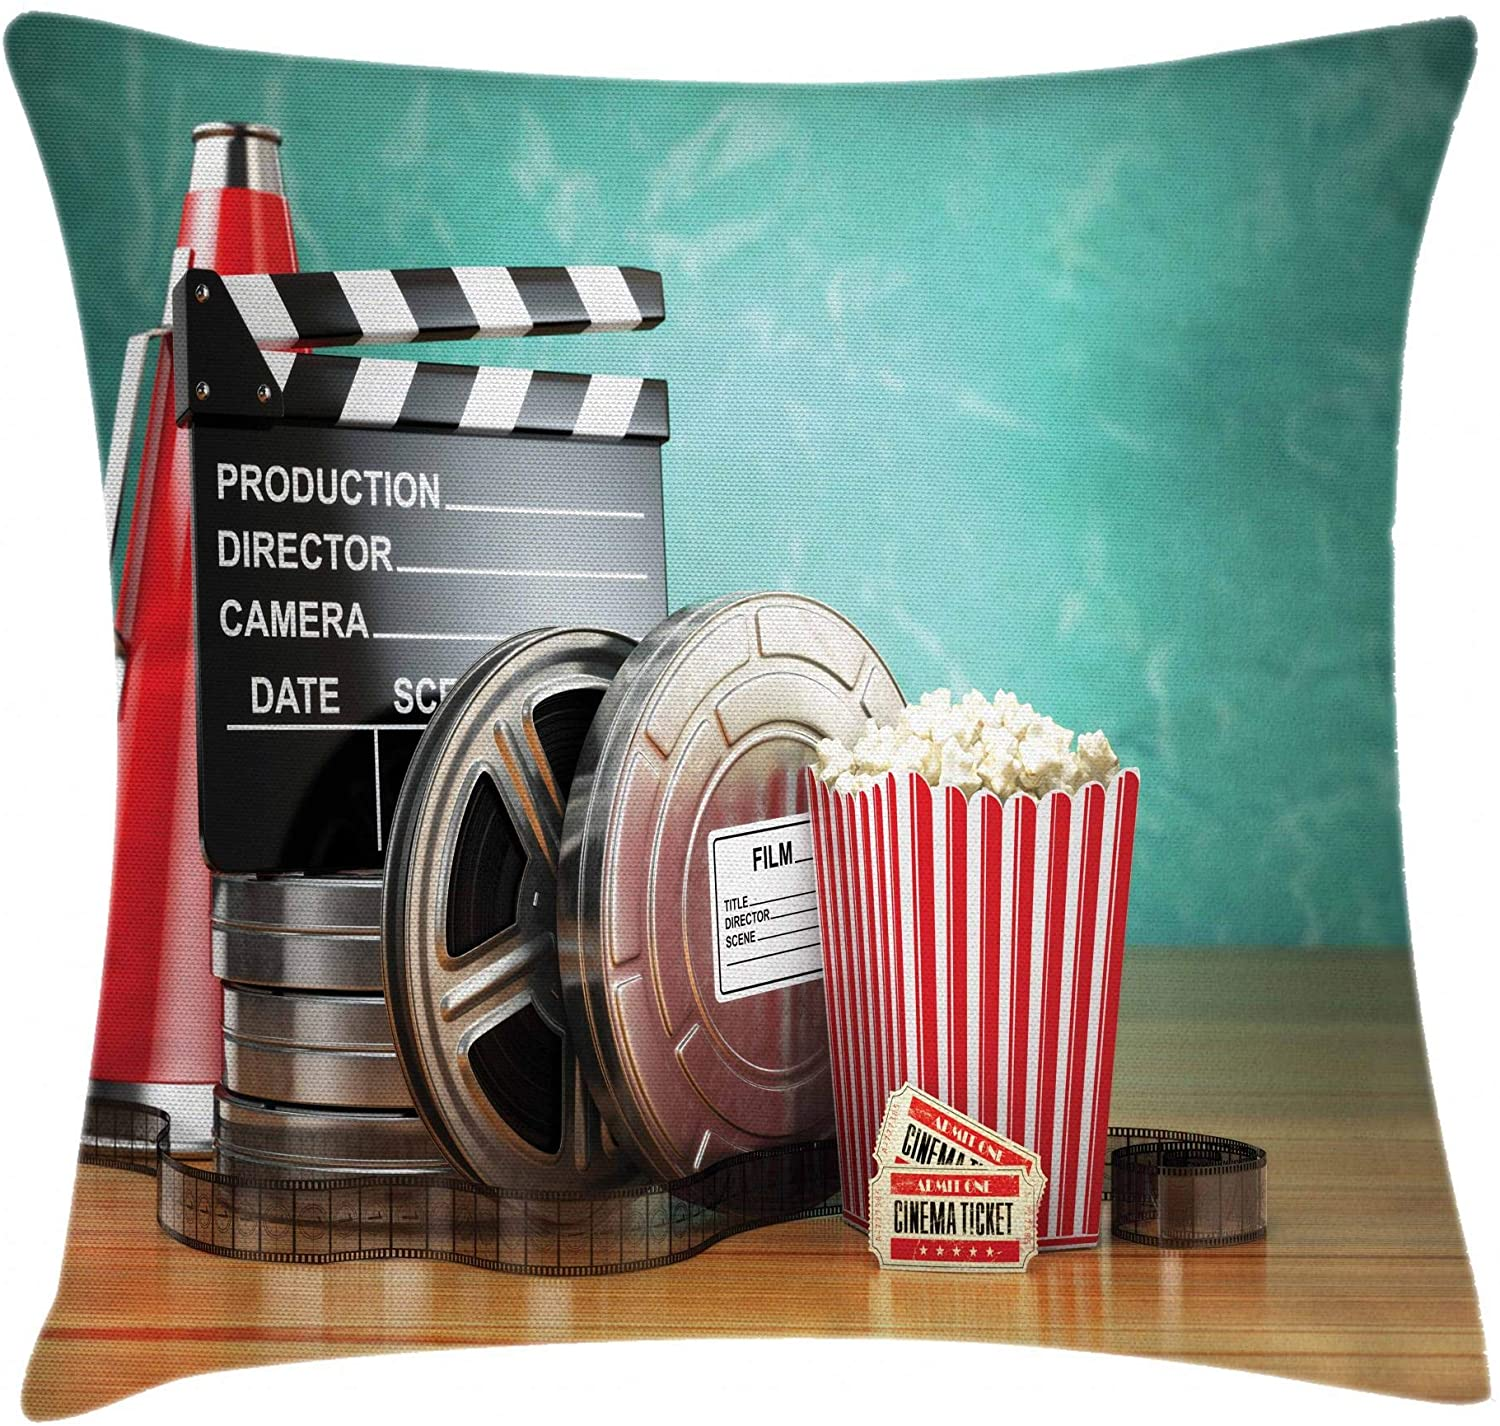 Ambesonne Movie Theater Throw Pillow Cushion Cover, Production Theme 3D Film Reels Clapperboard Tickets Popcorn and Megaphone, Decorative Square Accent Pillow Case, 18